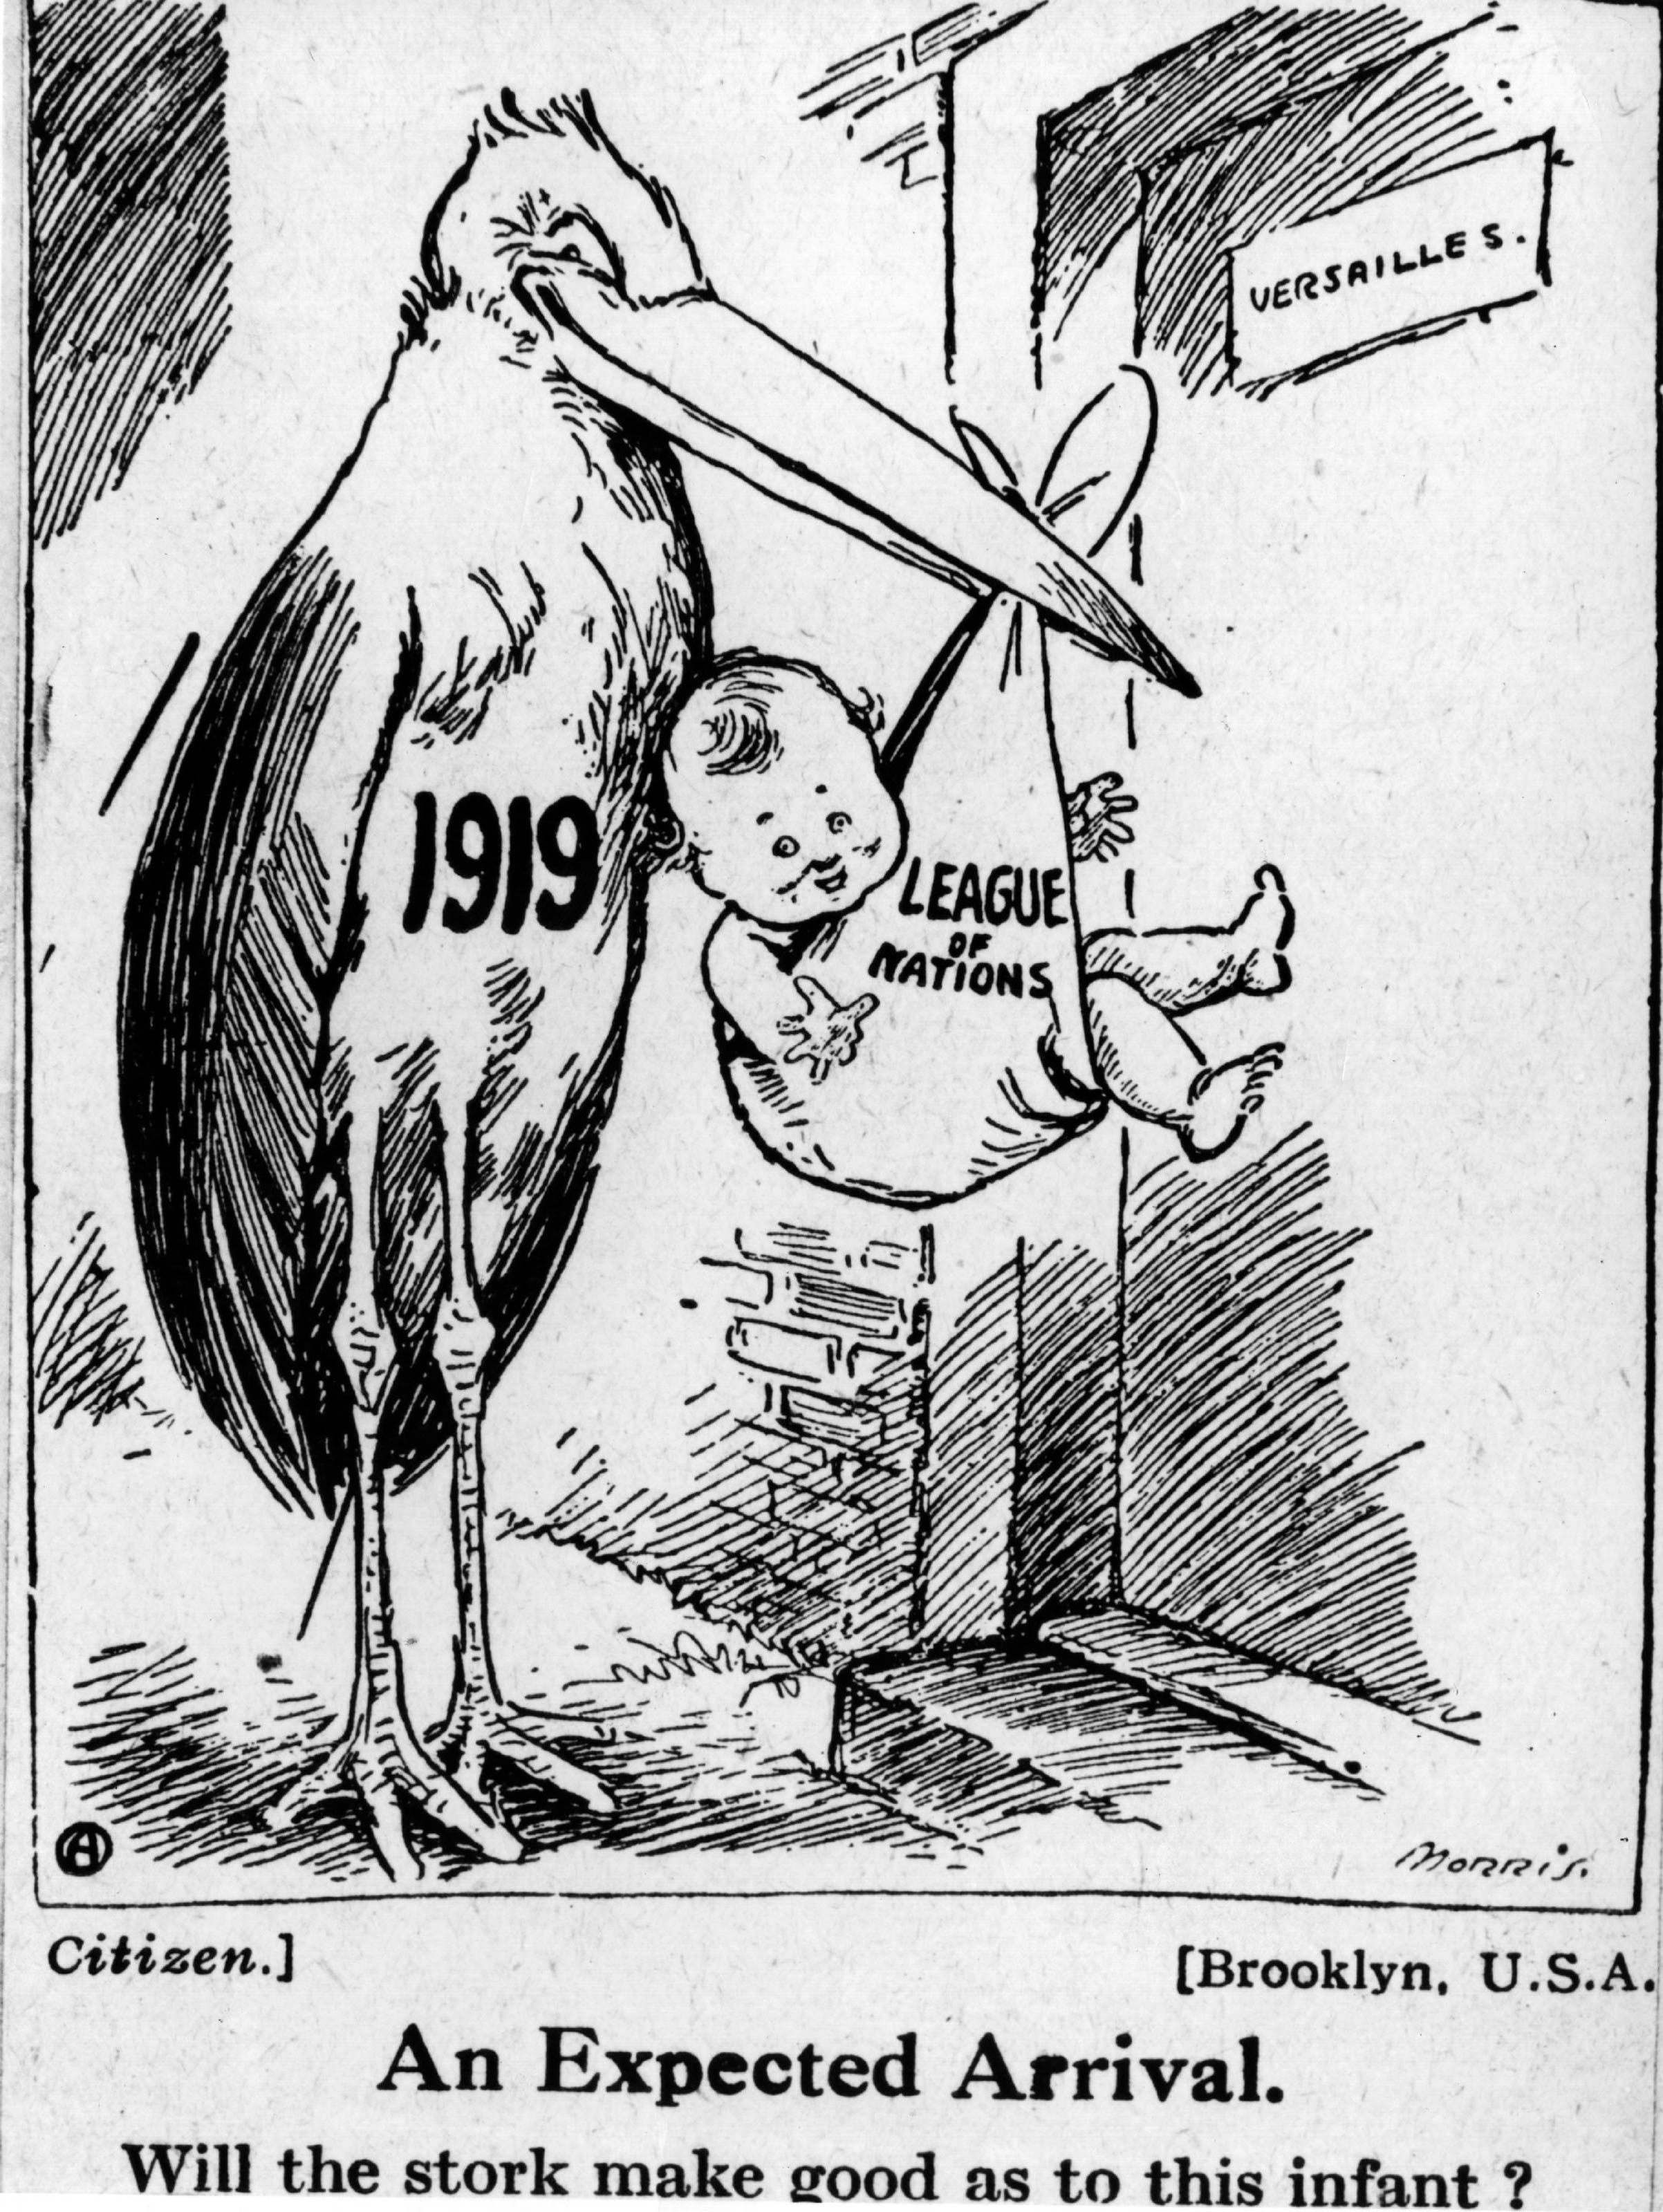 A Jan. 1919 cartoon in the Brooklyn Citizen newspaper depicts the formation of the League of Nations after the First World War. The caption reads: 'Will the stork make good as to this infant?'